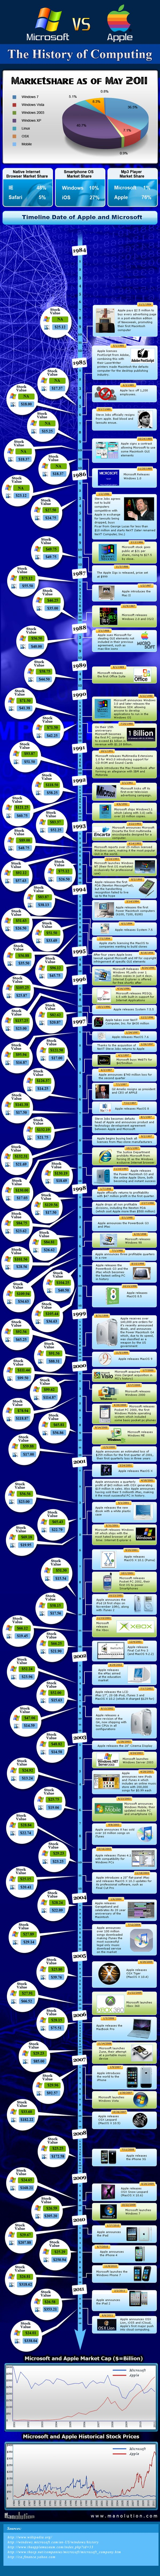 Apple Vs. Microsoft: The History Of Computing [TIMELINE INFOGRAPHIC]